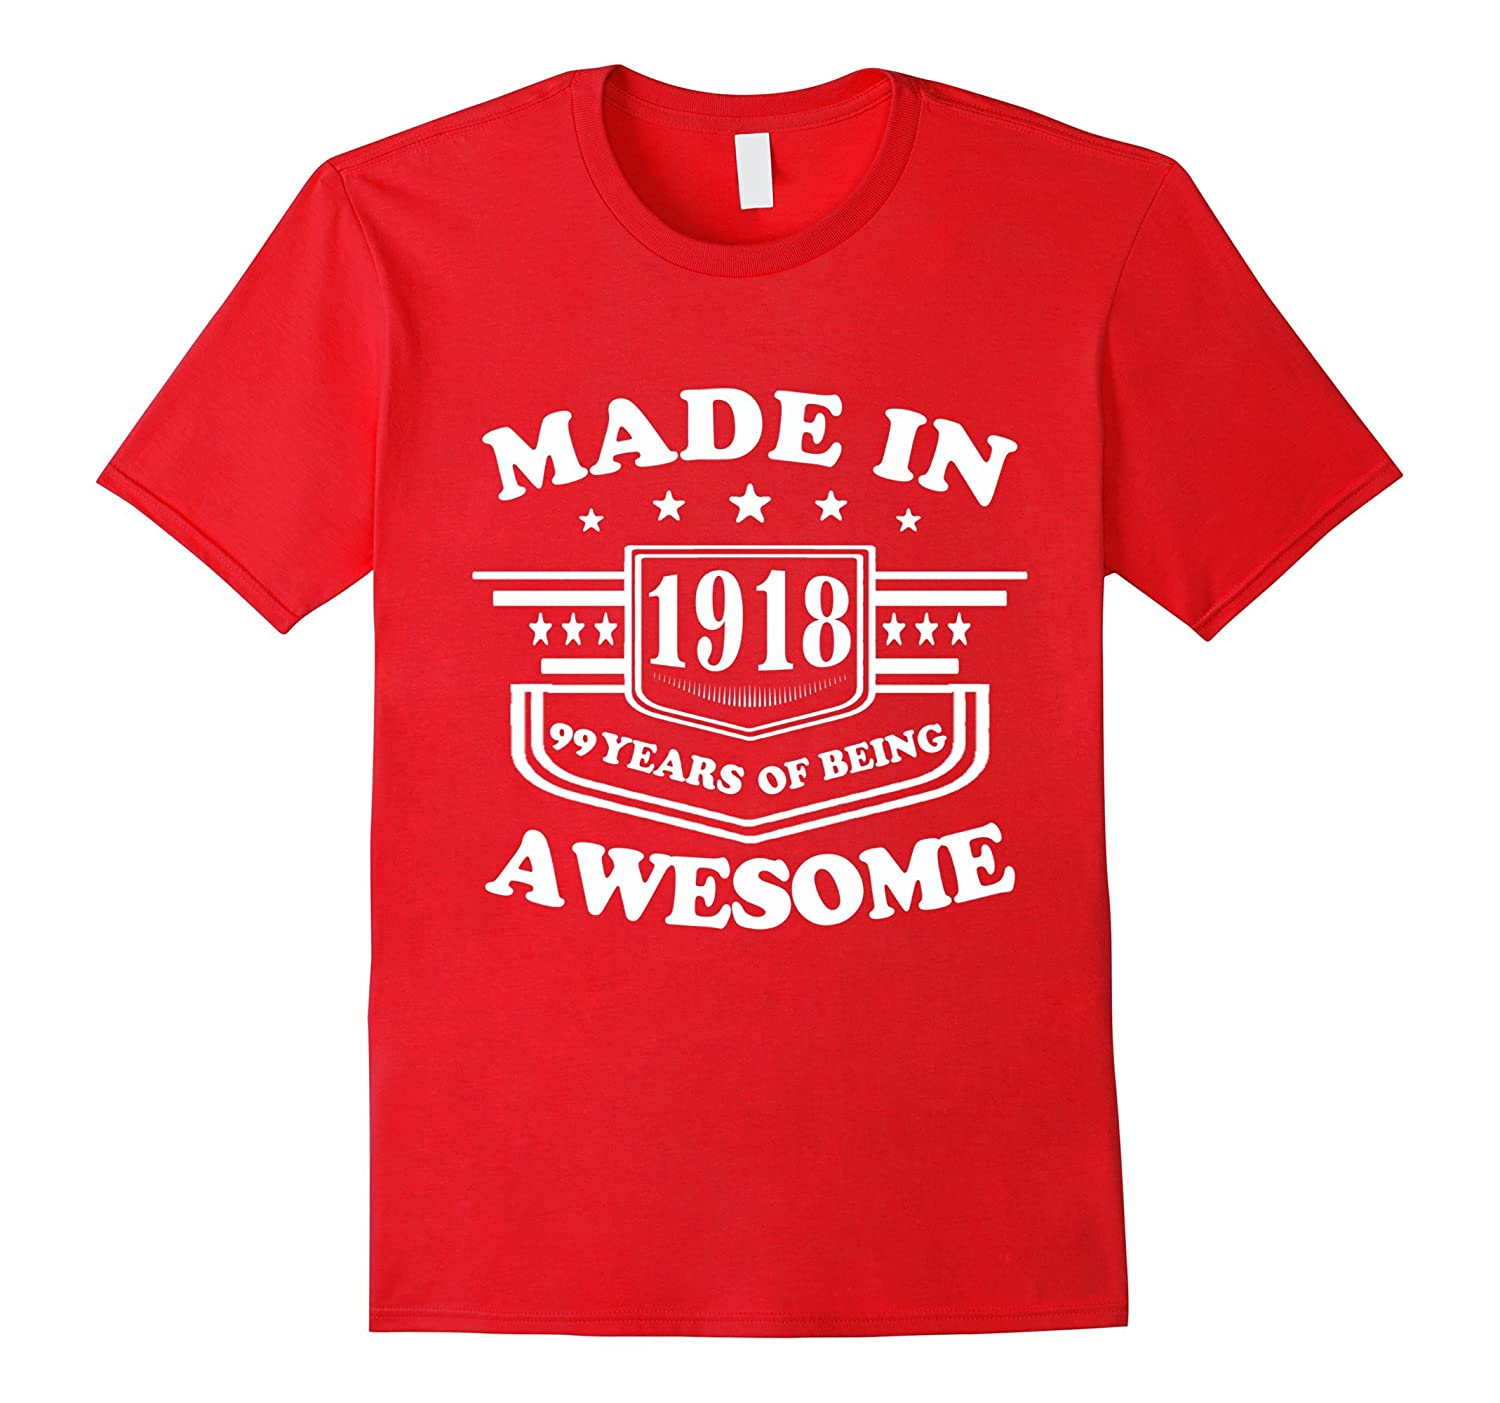 99th Birthday T-Shirt Vintage Made in 1918 Gift ideas Guys-PL